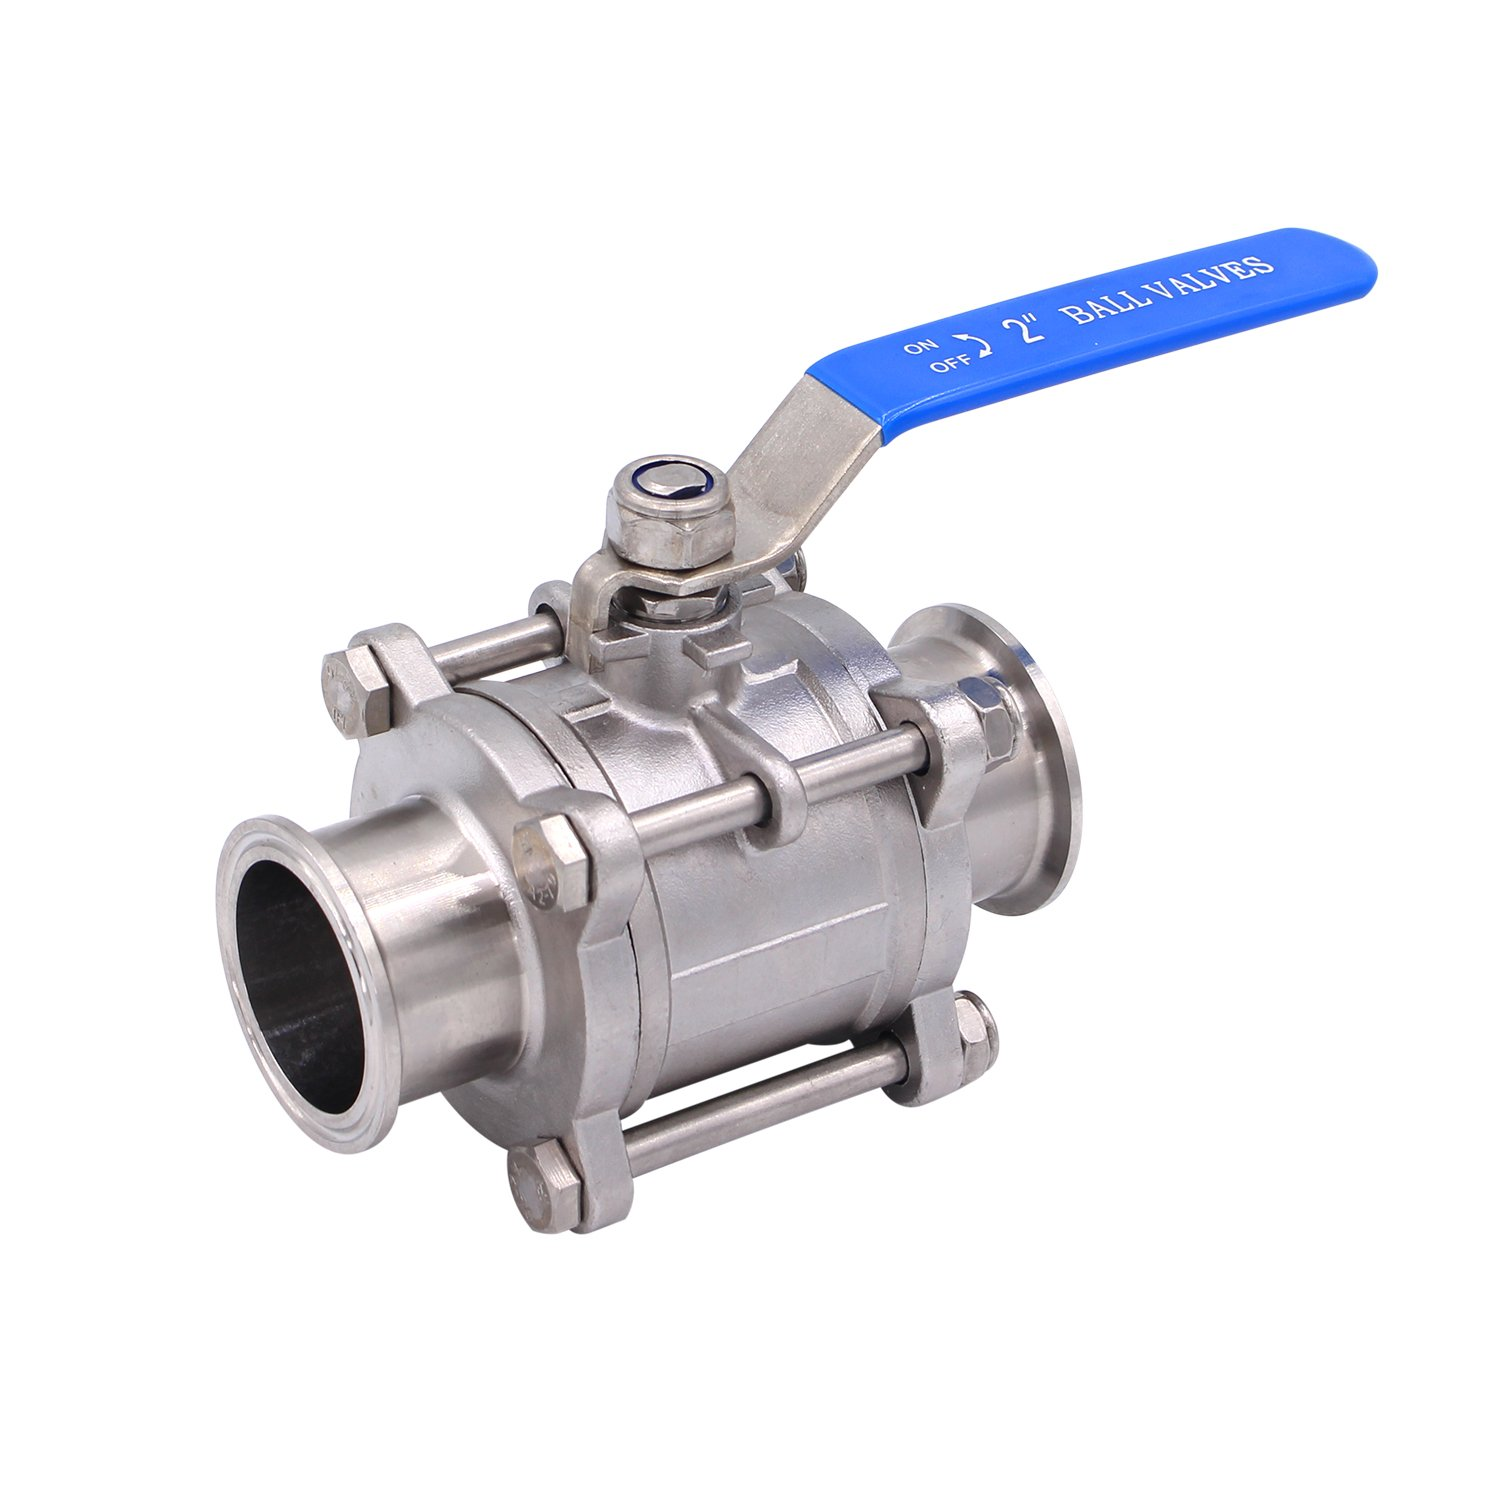 Dernord 2'' Sanitary Ball Valve Fits 2'' Tri-Clamp Clover Stainless Steel 304, PTFE Lined, Two Way & Three Piece (2 Inch Tube OD Quick Clamp)